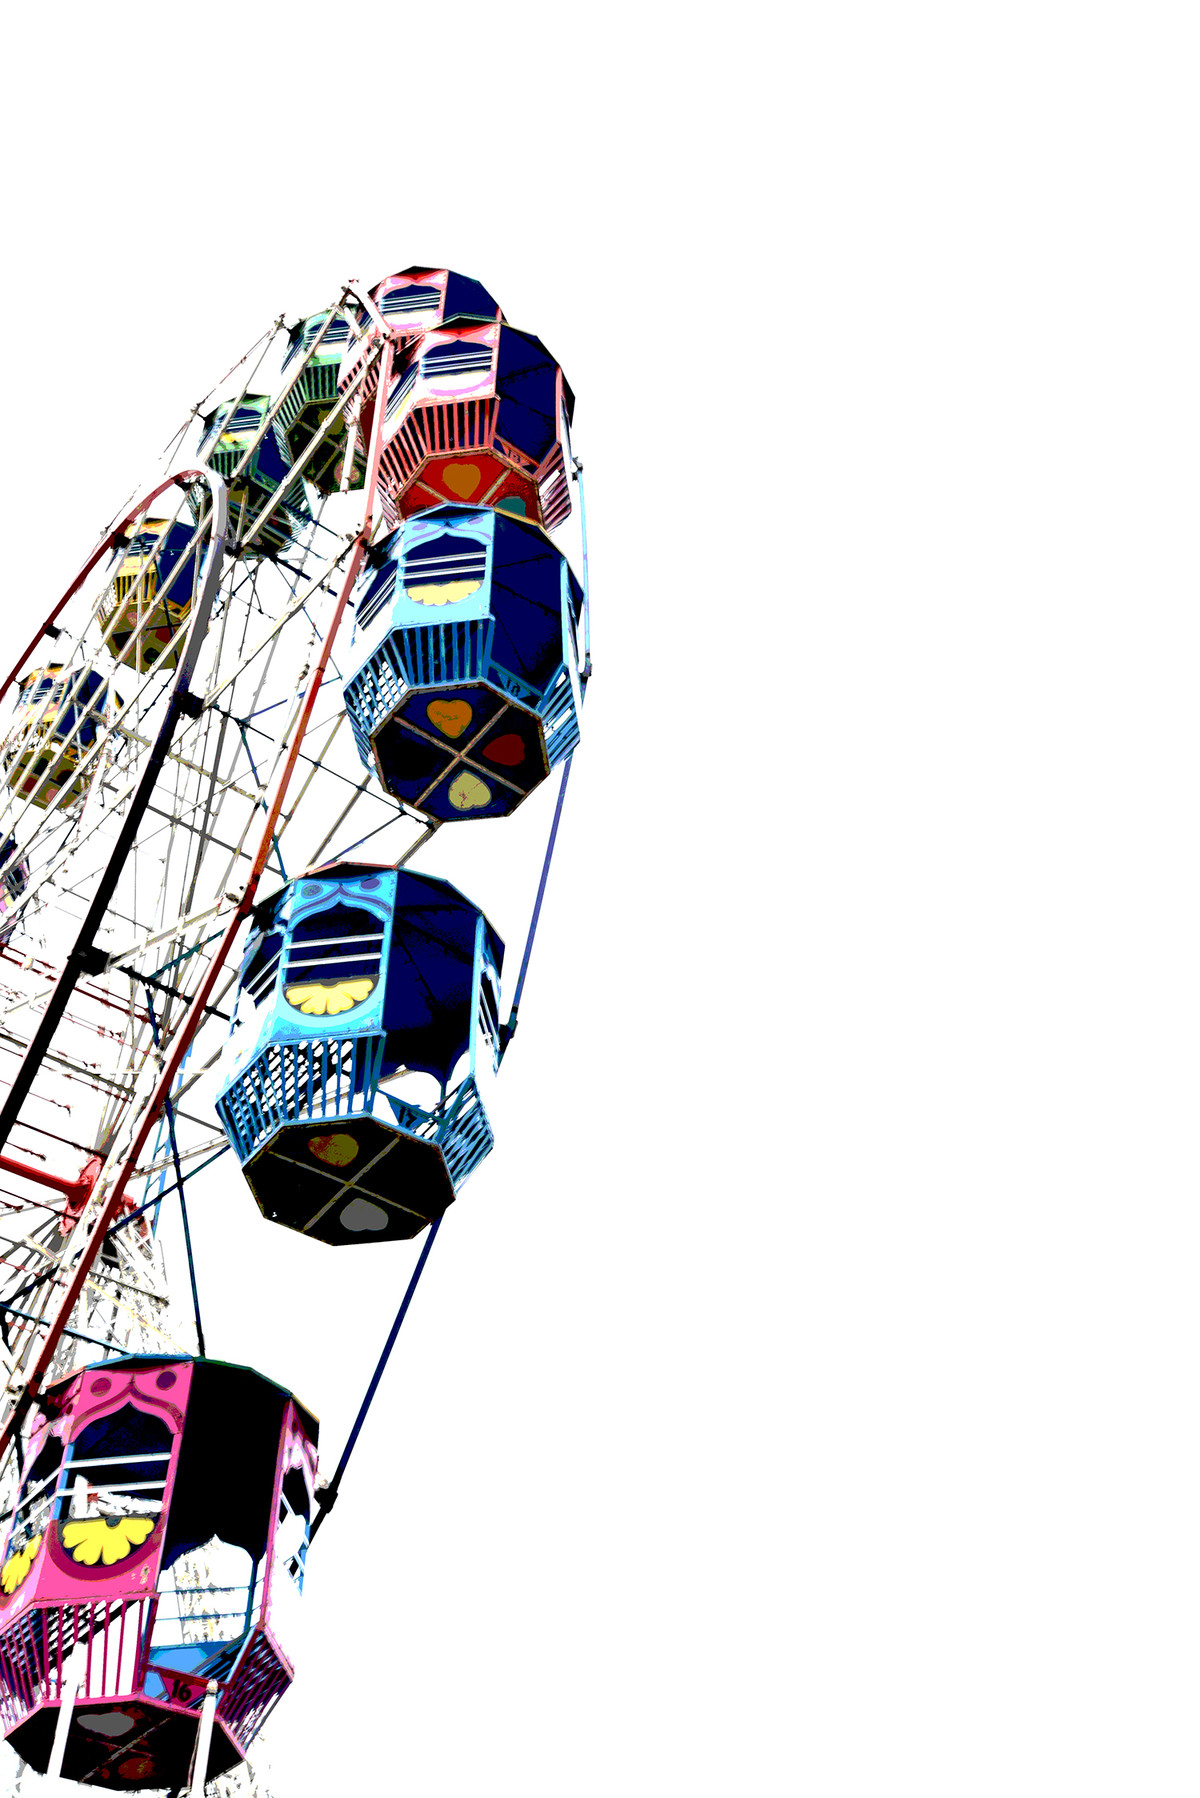 The Wheel of Fun by Anand C, Image Photography, Print on Paper, Quill Gray color